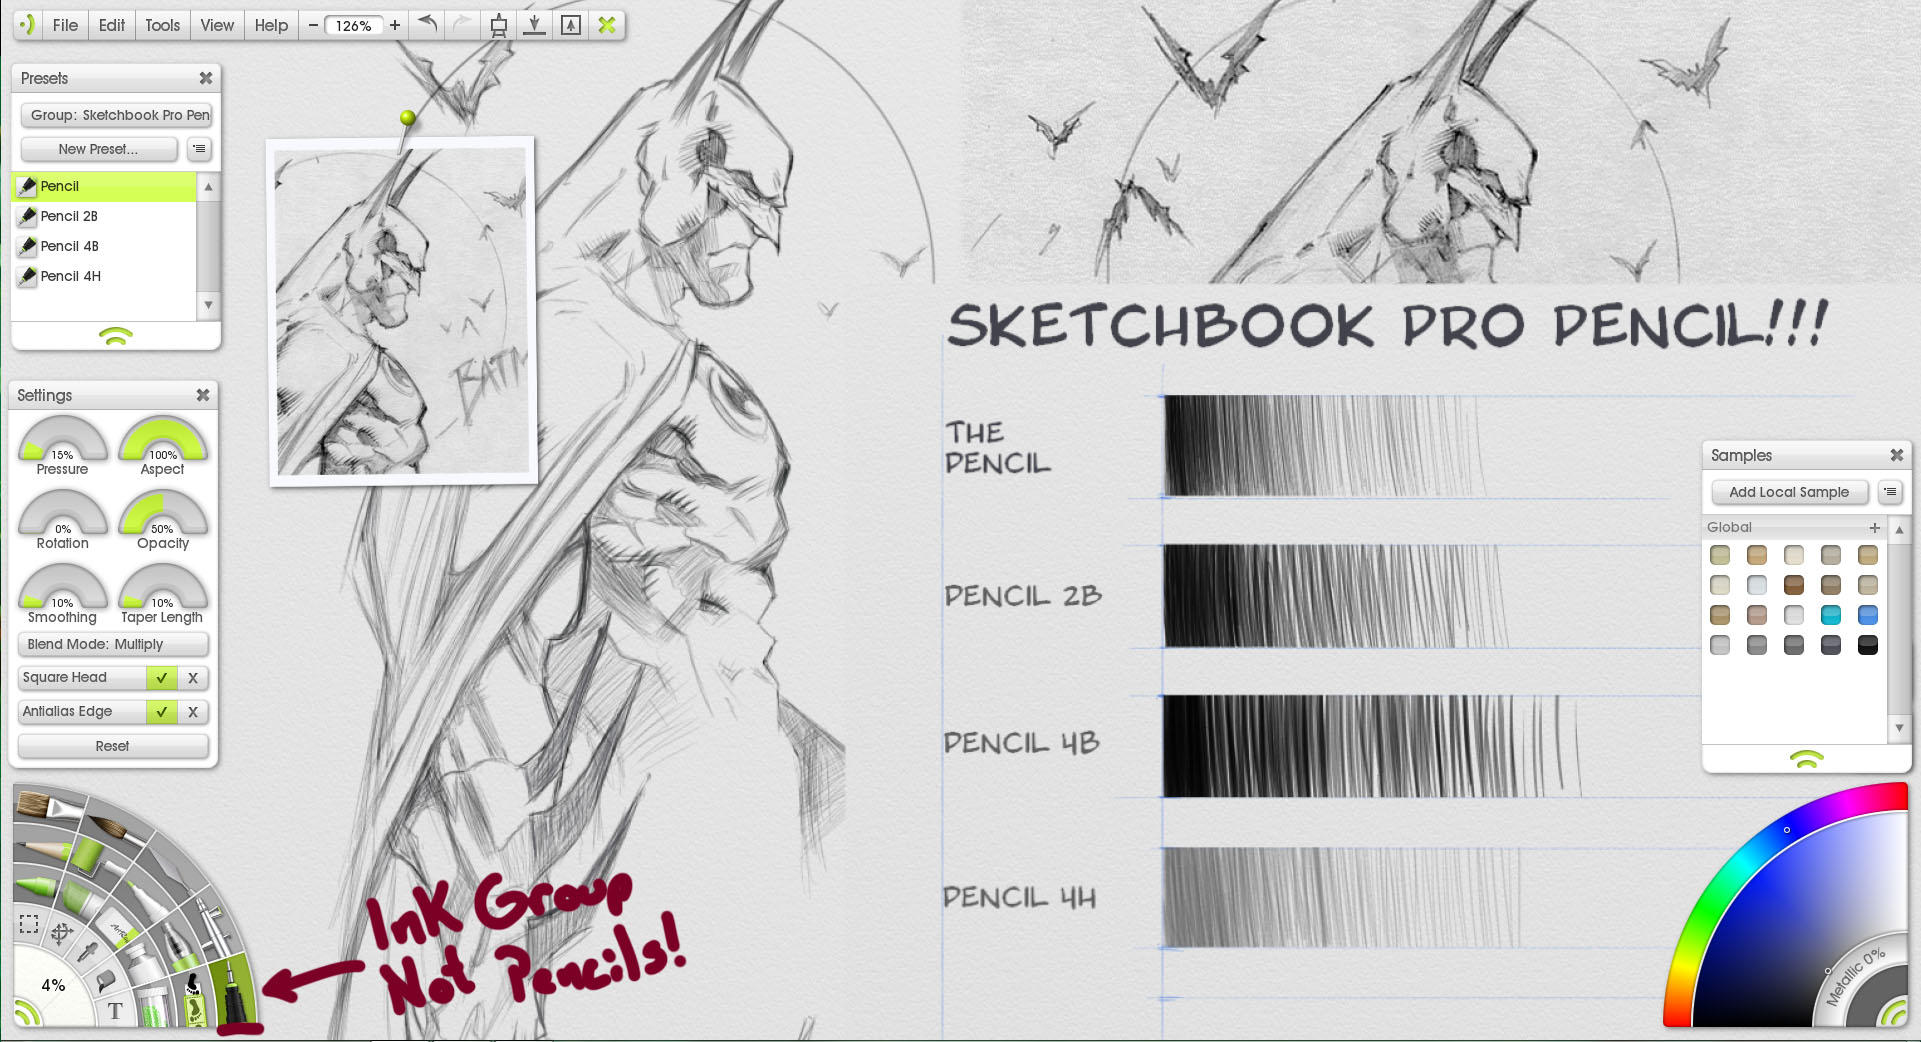 How to create grid in sketchbook pro -  Sketchbook Pro Pencil In Artrage By Rad66203